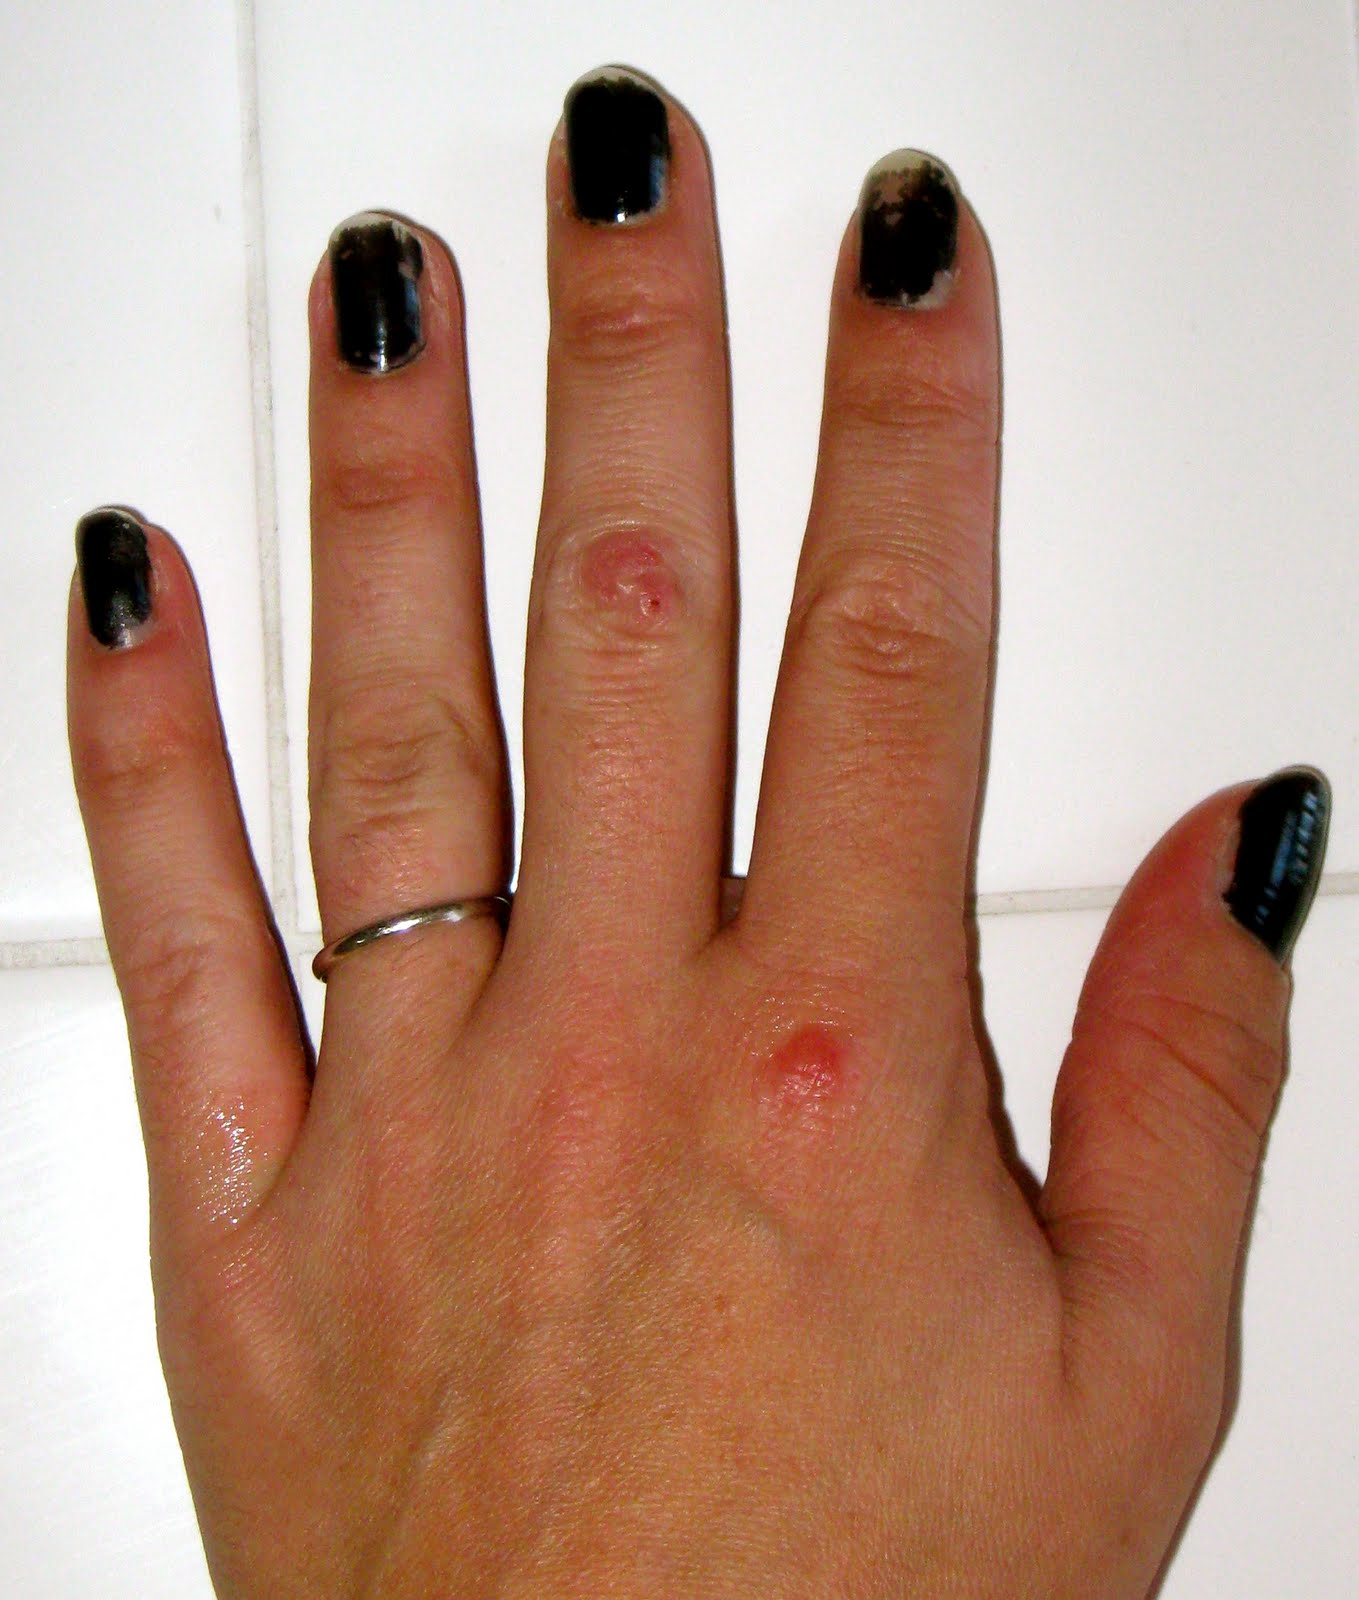 Bump On Knuckle Joint Middle Finger Pictures To Pin On